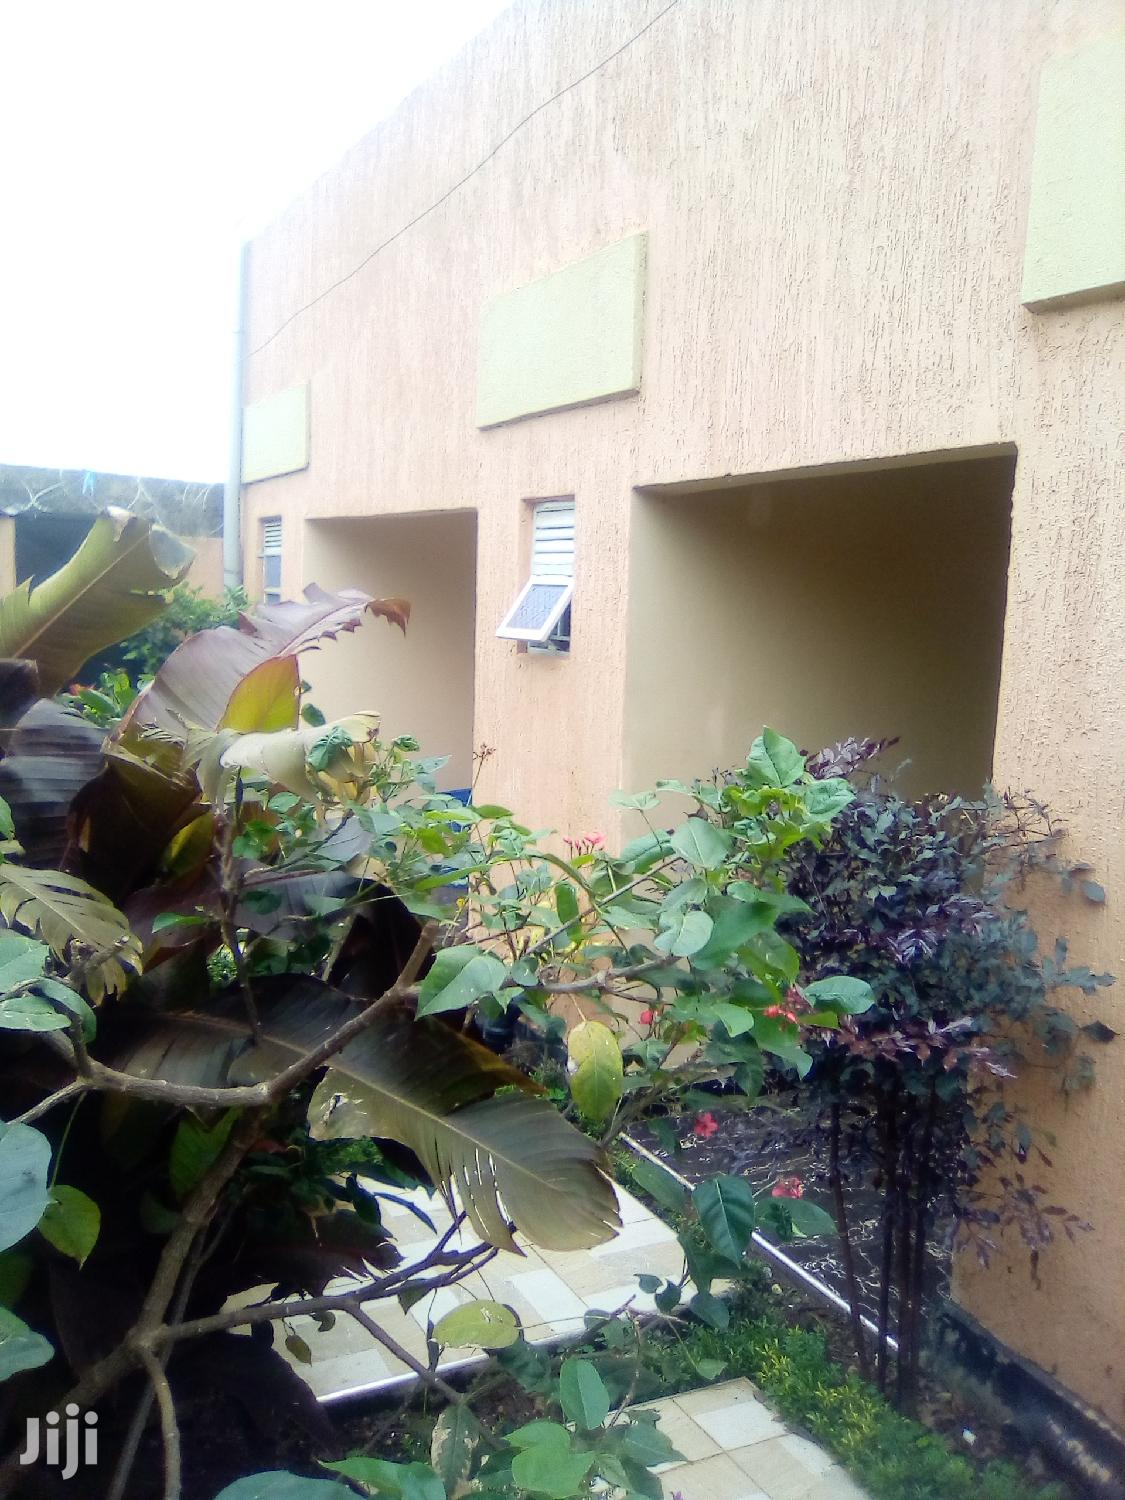 Kireka Single Room For Rent | Houses & Apartments For Rent for sale in Kampala, Central Region, Uganda